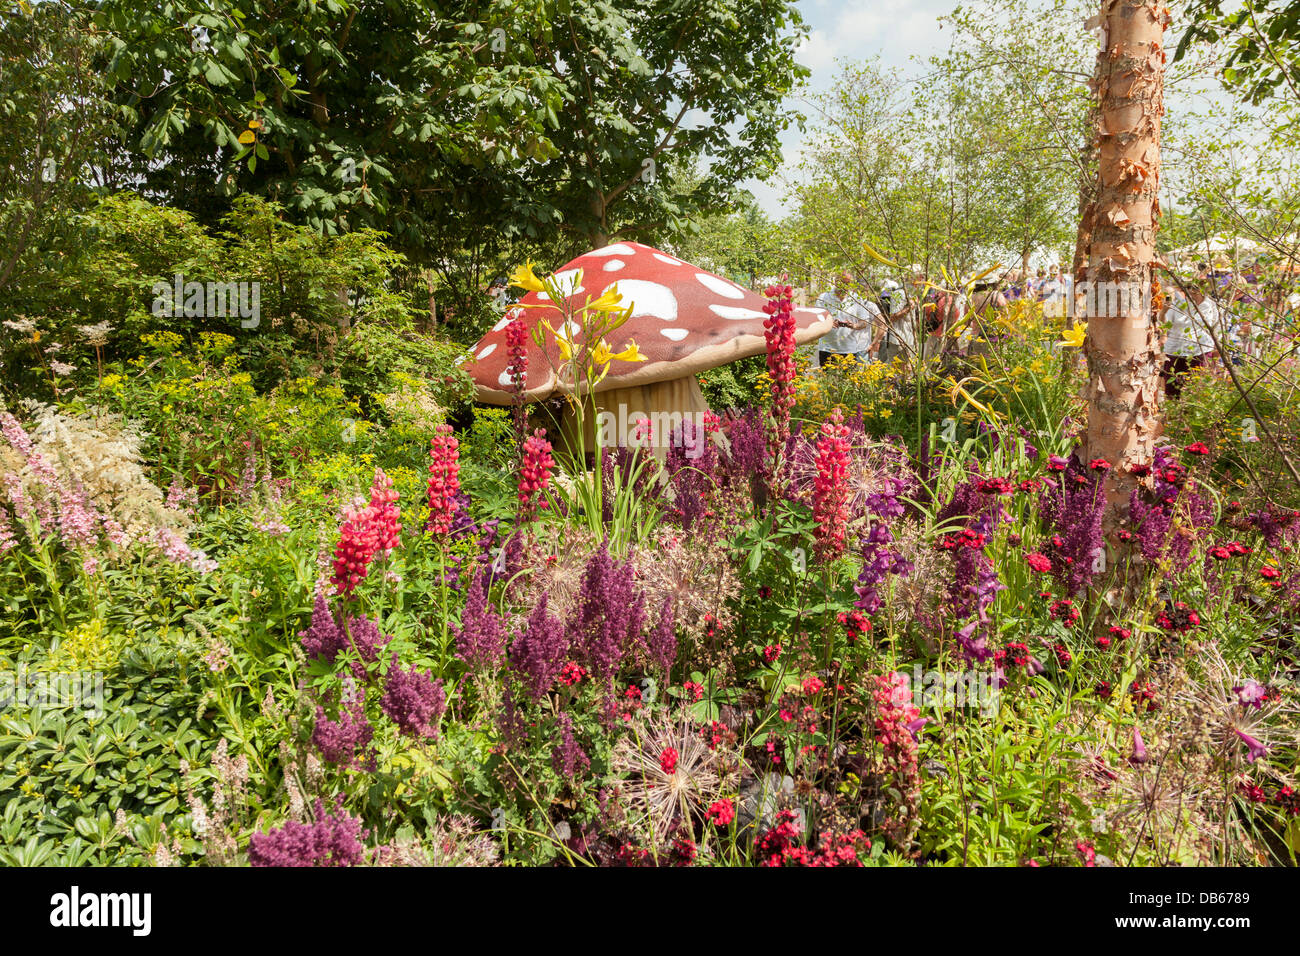 the One Show Garden by Vicky Stothard at the Hampton Court Flower Show 2013 - Stock Image